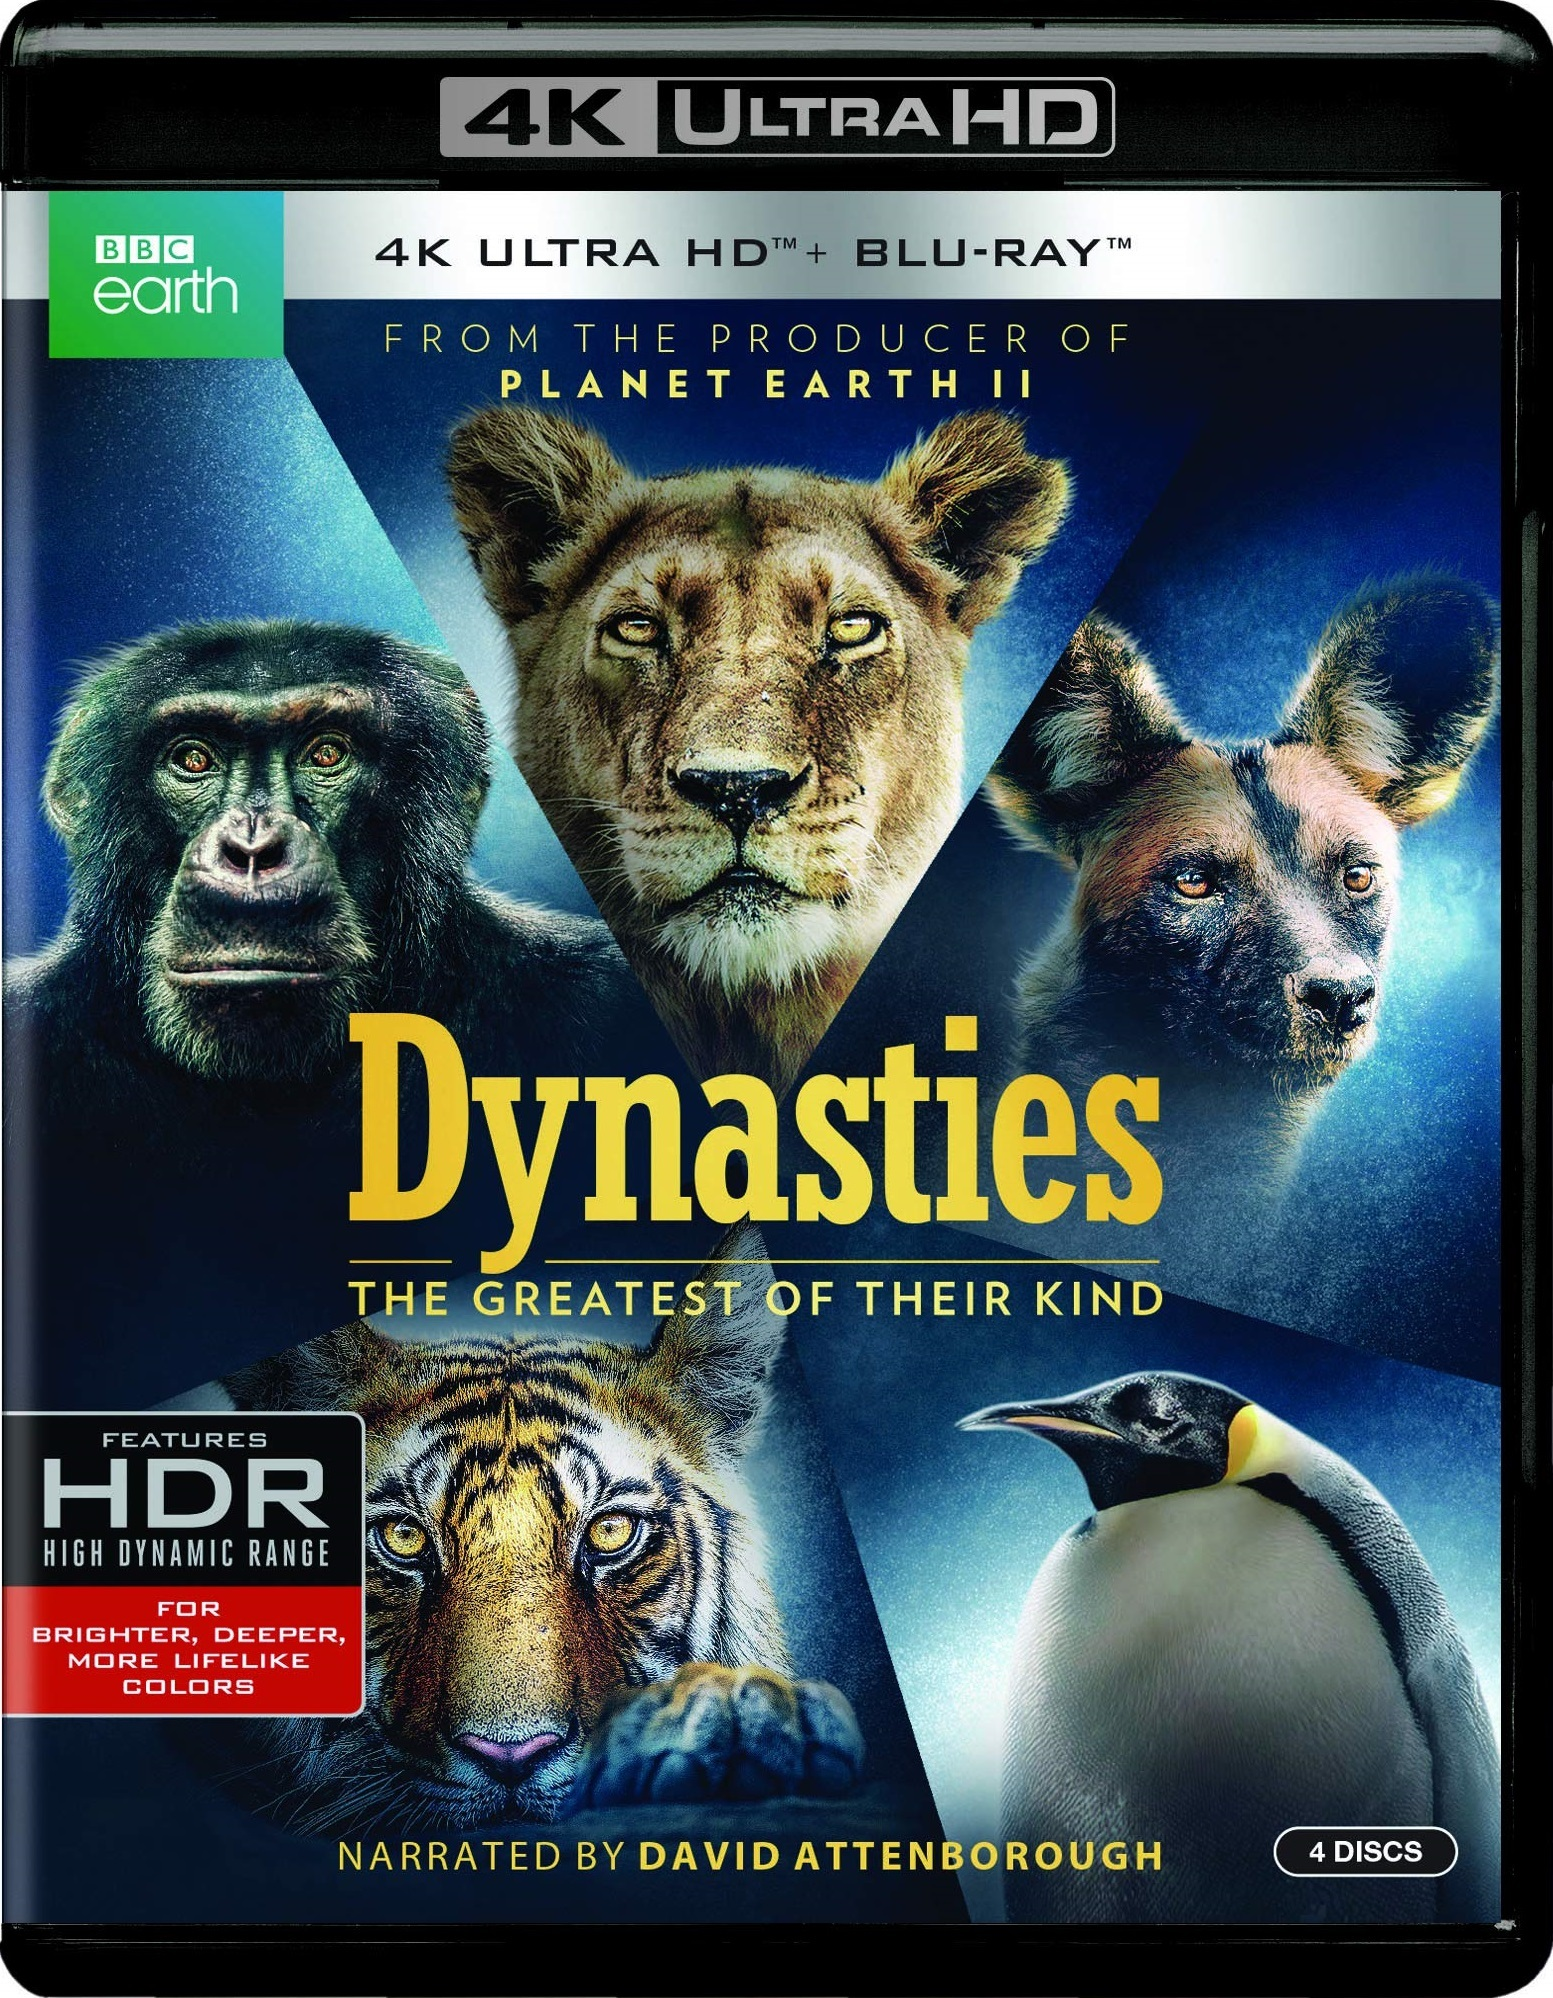 Dynasties (4K Ultra HD Blu-ray)(Pre-order / Feb 26)